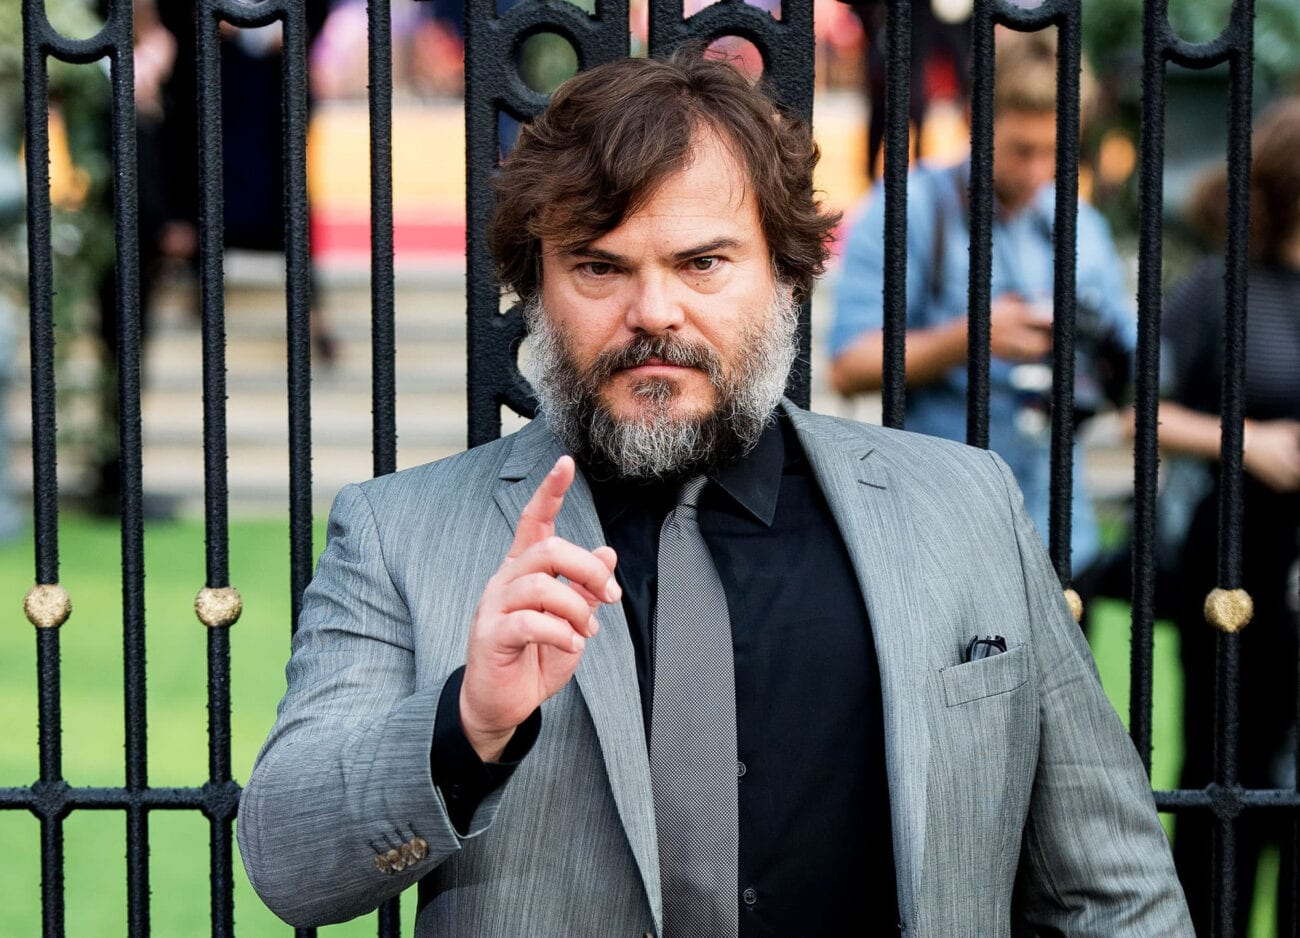 You may know Jack Black as a leading man, but this wasn't always the case. Roll with laughter at Jack Black's funniest, lesser-known roles with us!